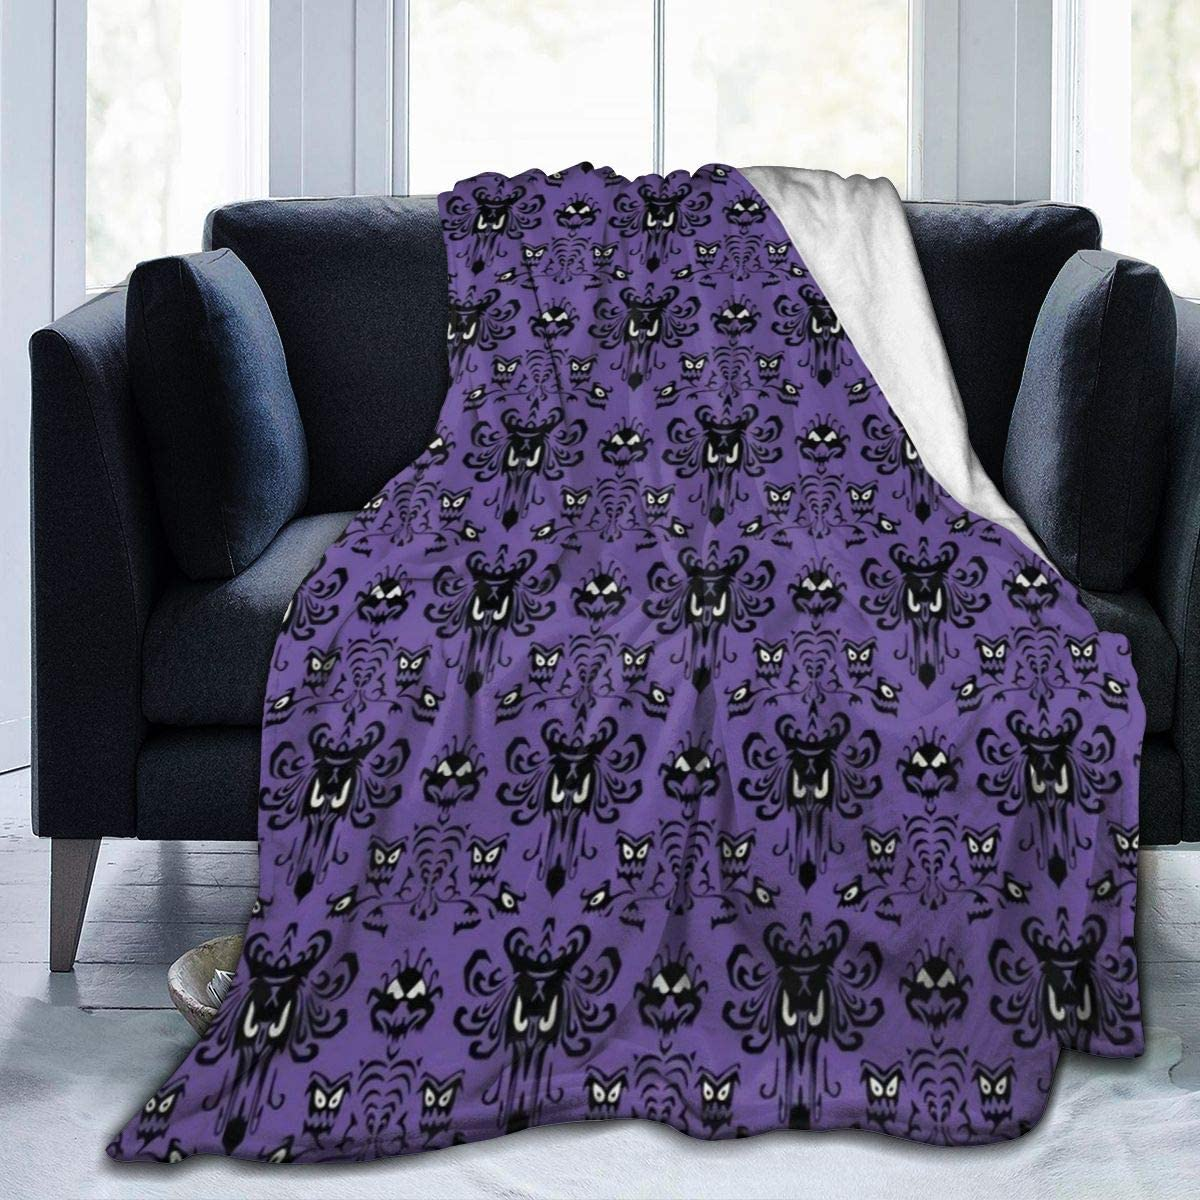 """MSGUIDE Haunted Mansion Flannel Throw Blanket for Kids Adult, Anti-Pilling Cozy Bed Blanket Lightweight Microfiber Blankets for Couch/Bed/Sofa/Office Suitable for All Season (60"""" x 50"""")"""